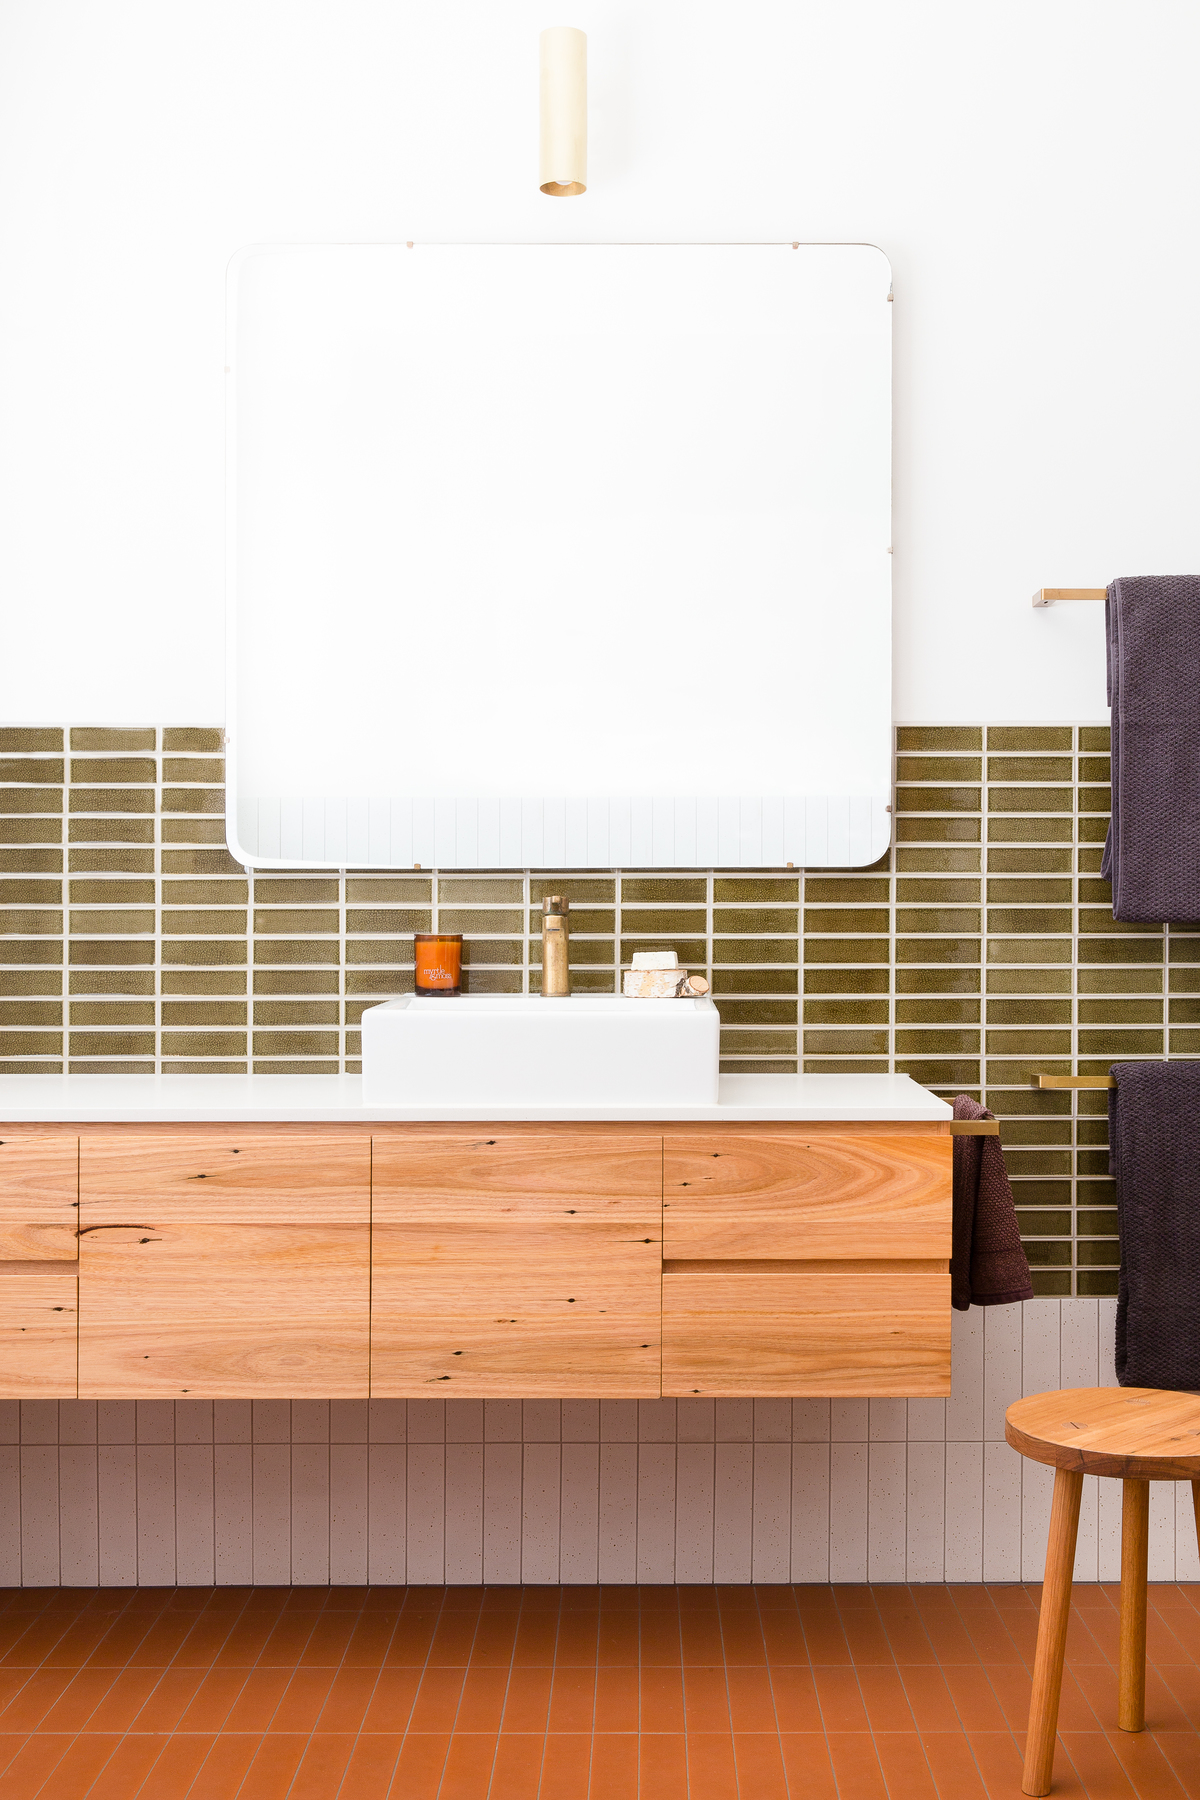 Bungalow Upcycle Project By Brave New Eco Local Residential Interiors And Bathroom Design Pascoe Vale, South Vic Image 6